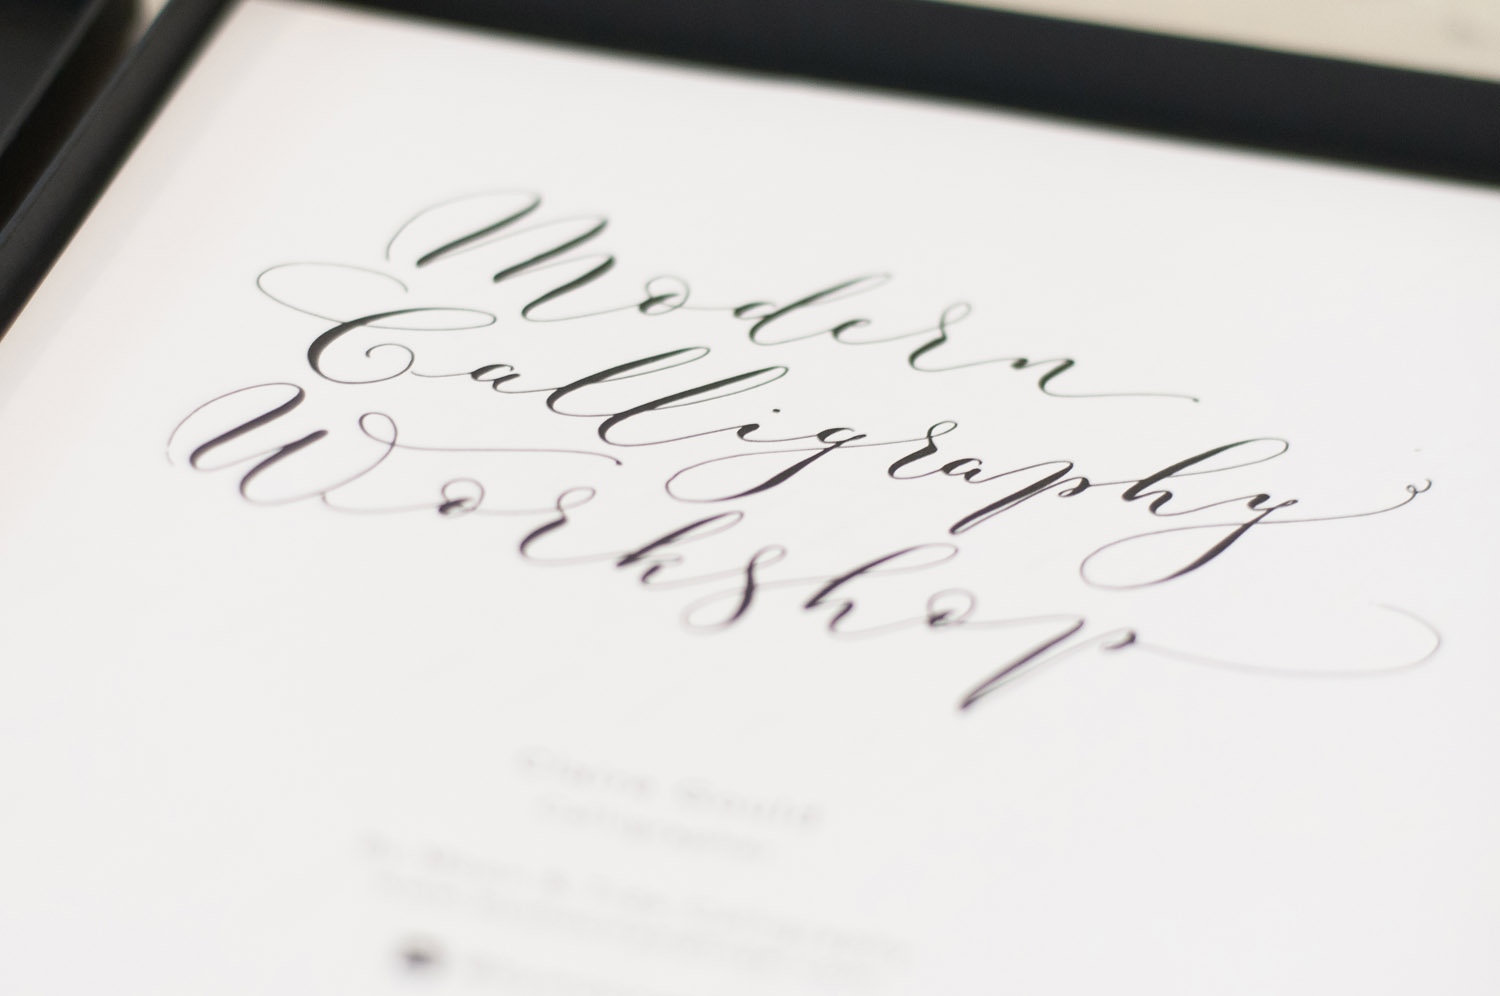 Calligraphy Online Learn Calligraphy Page 2 Calligraphy For Weddings